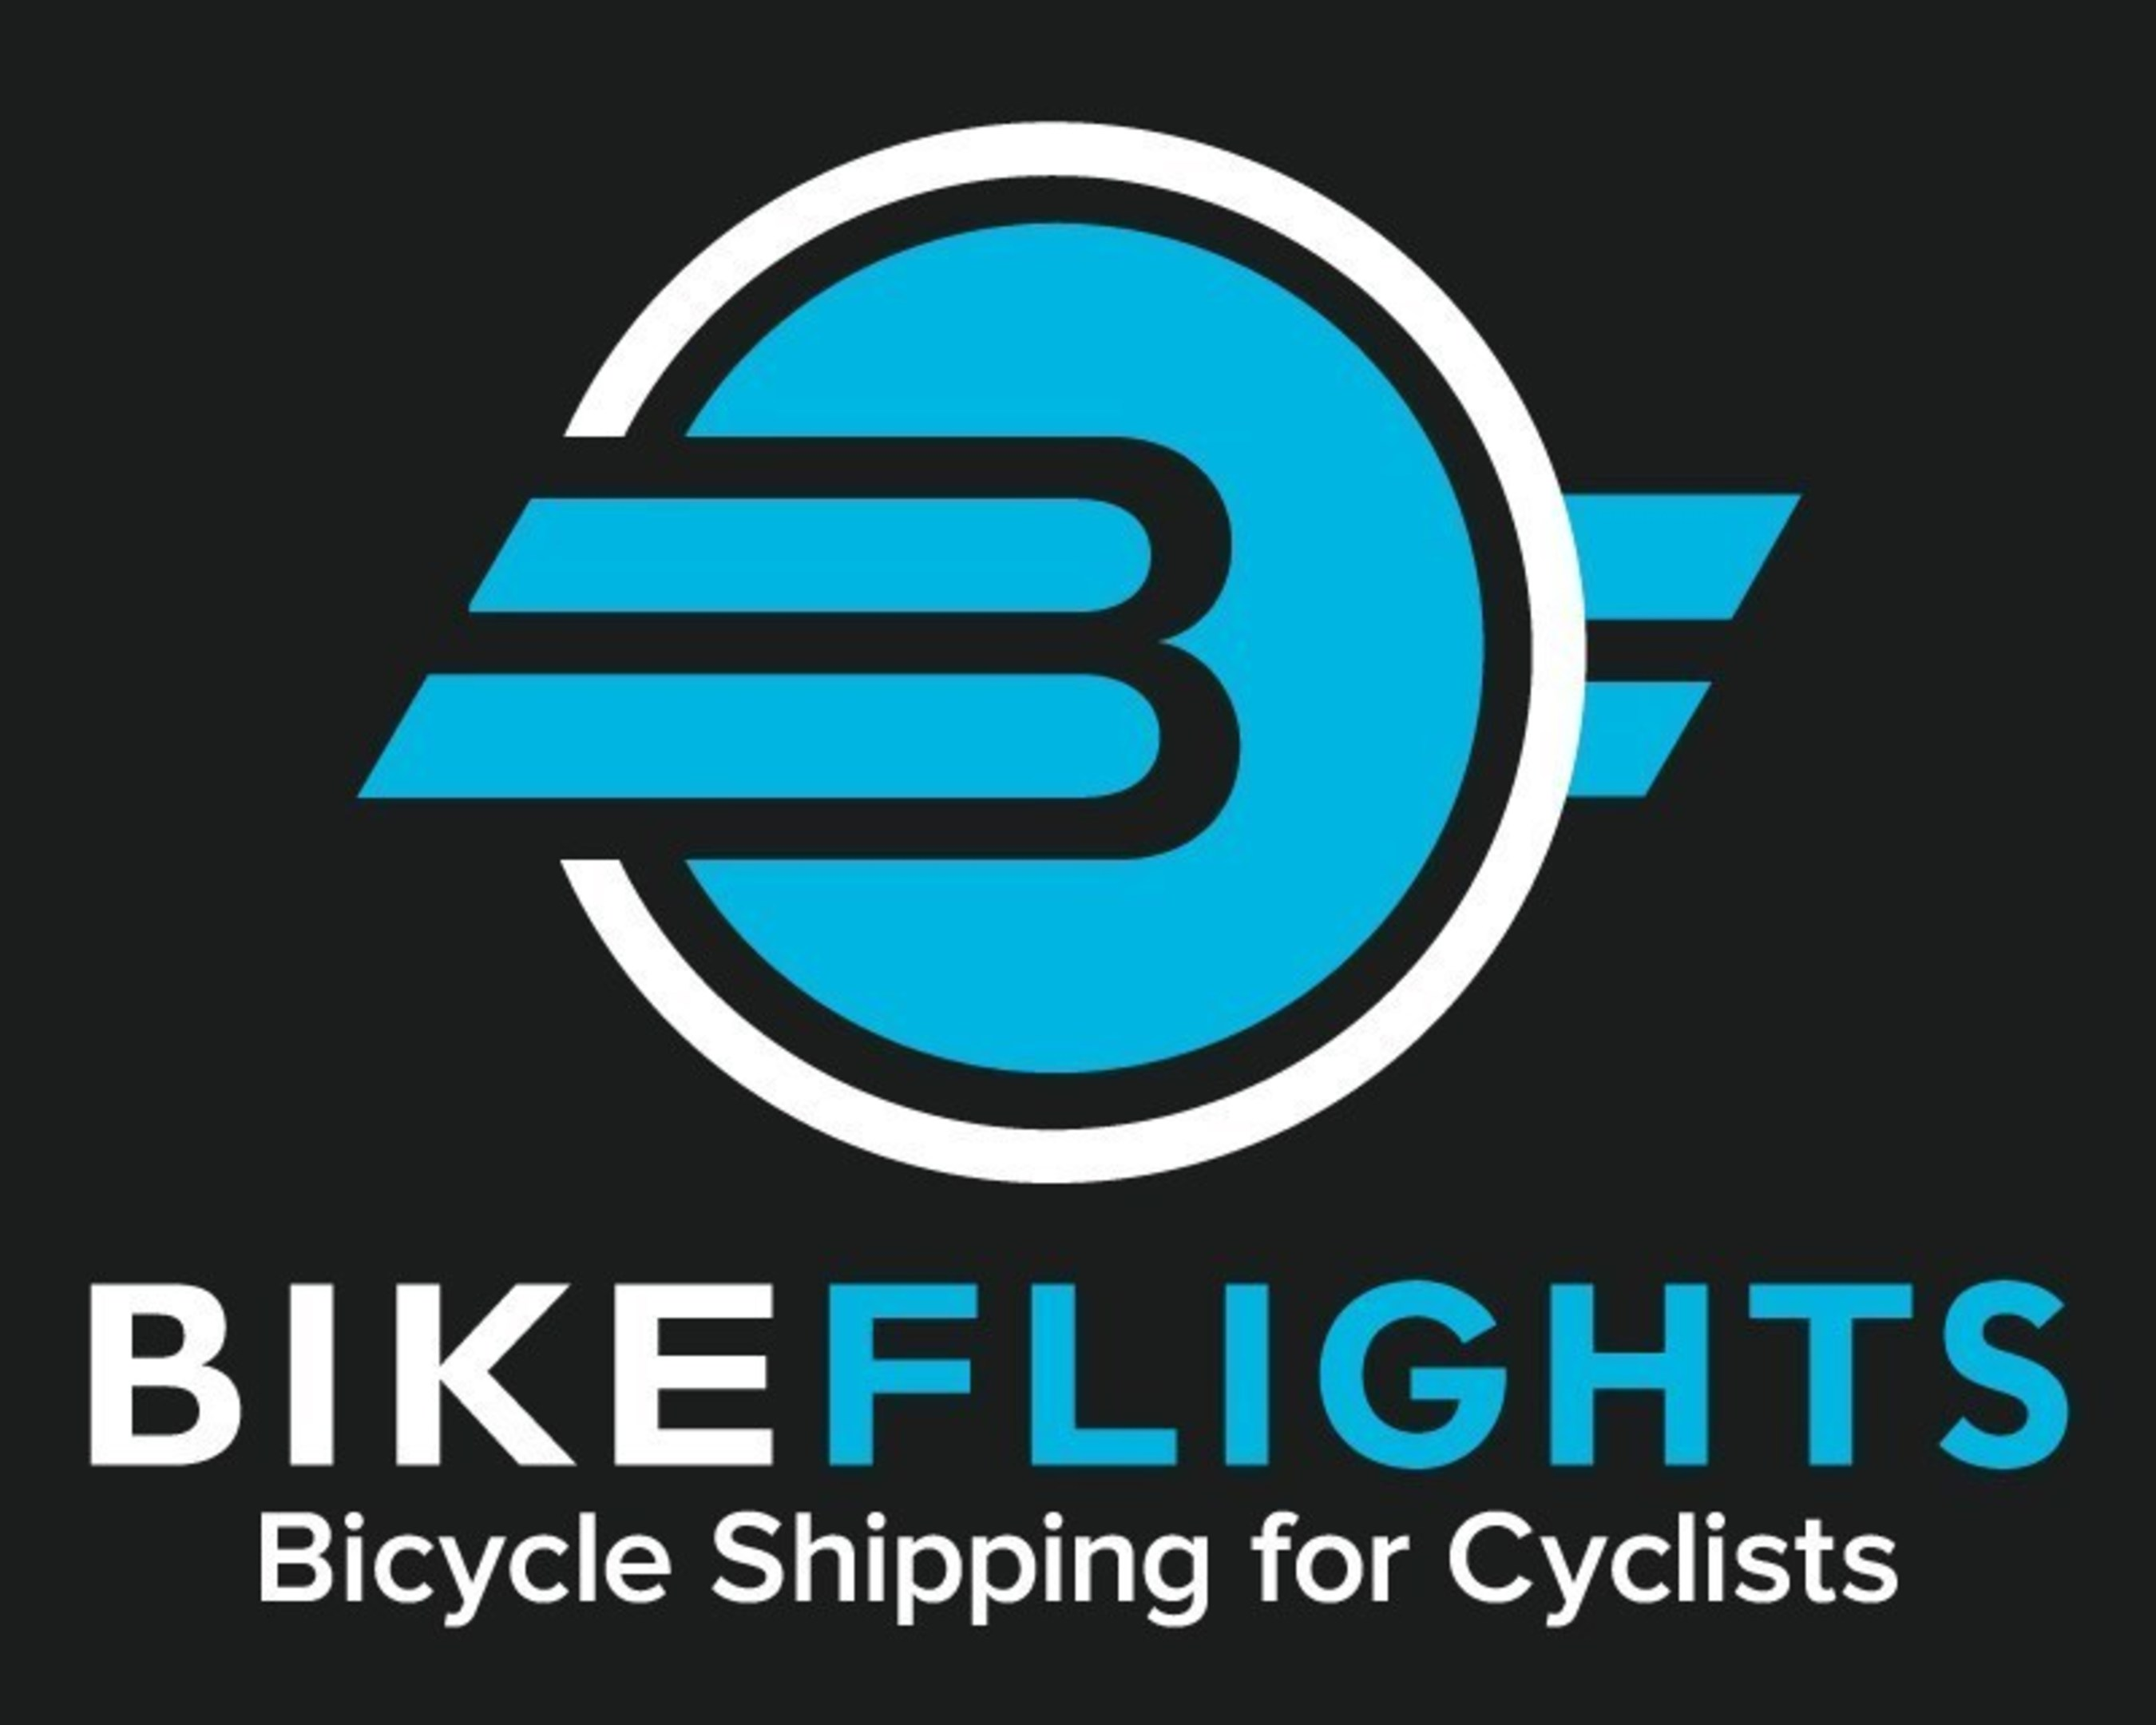 BikeFlights.com is a Bicycle Shipping Service for Cyclists.